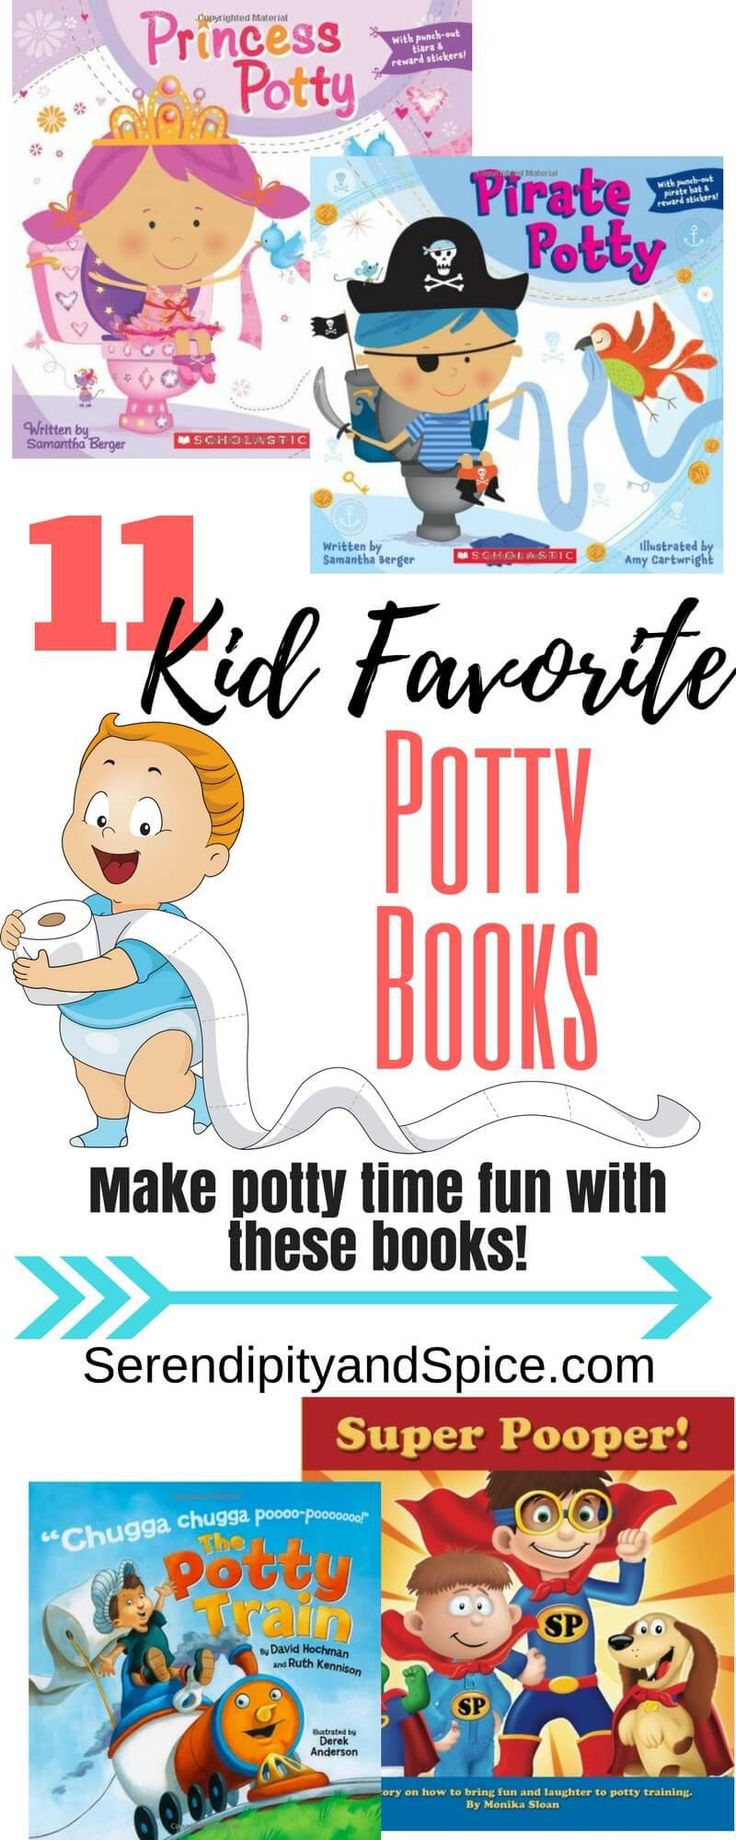 Books About Potty Training for Kids ~ great for parents trying to get children potty trained http://serendipityandspice.com